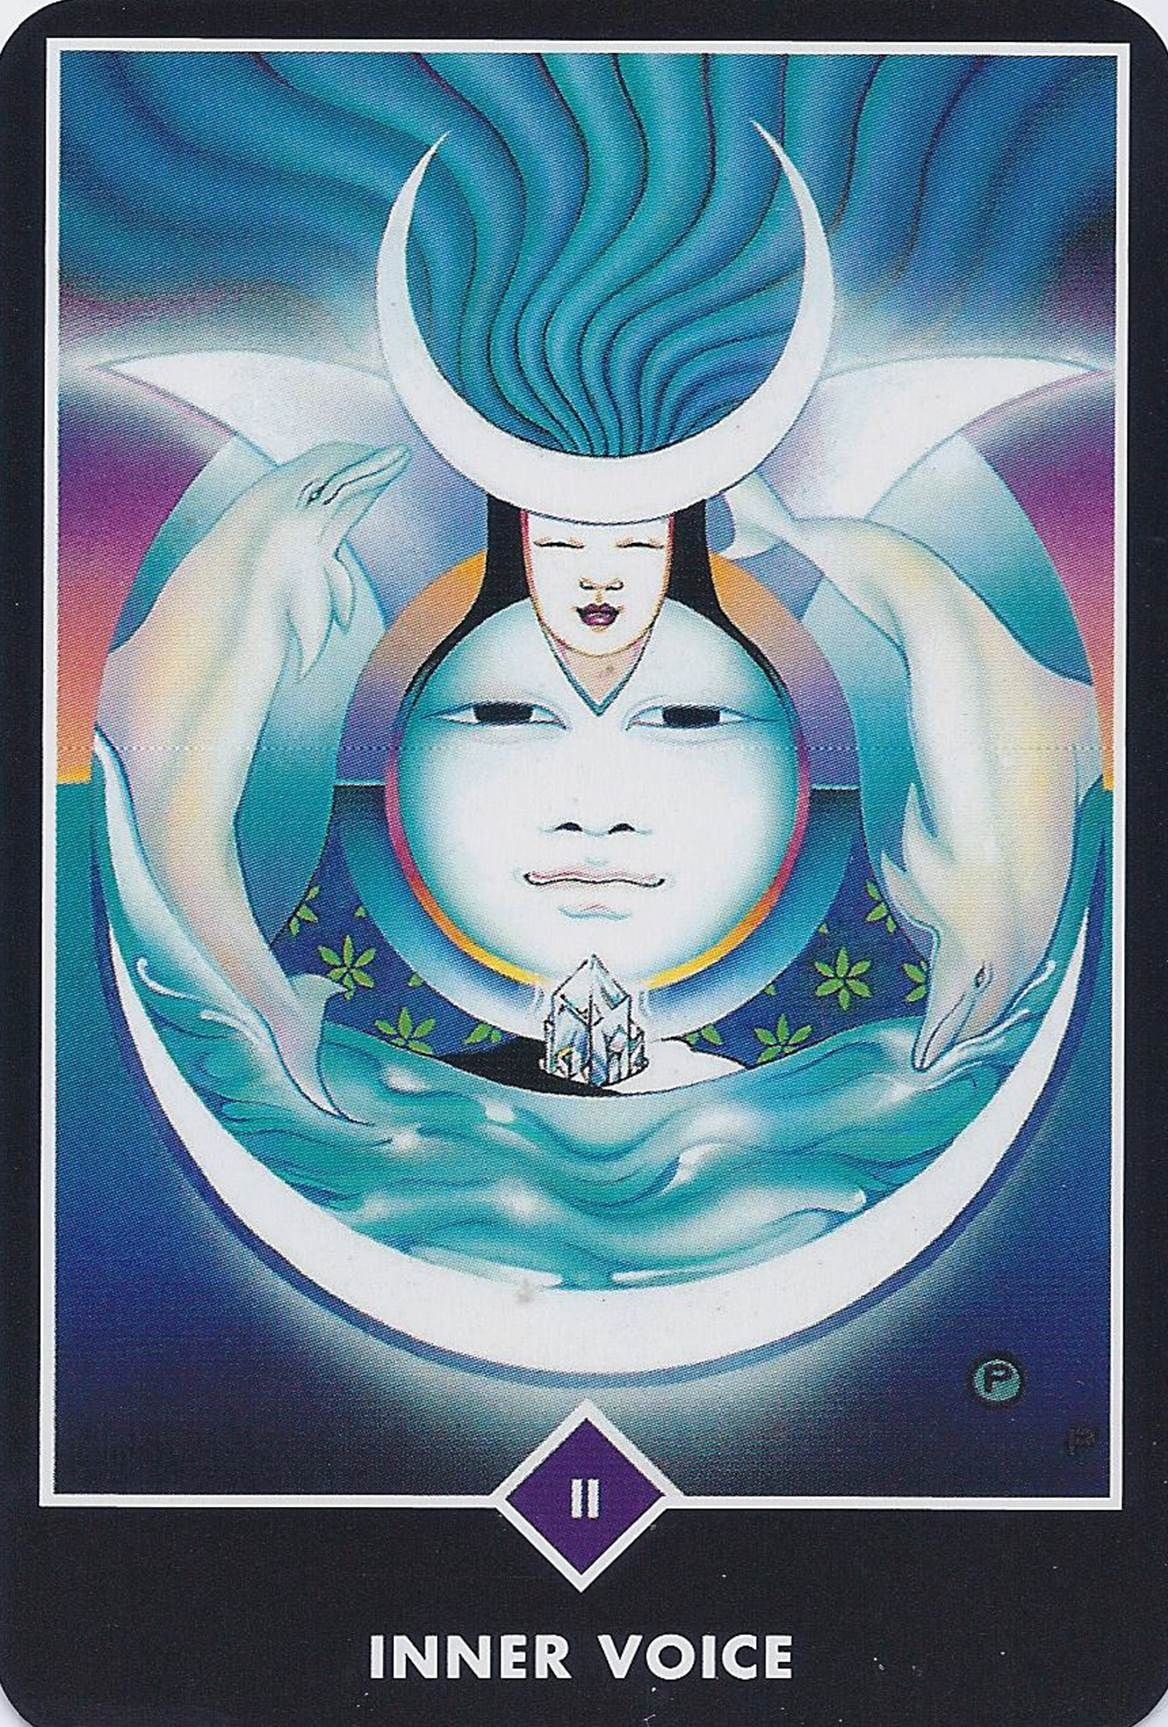 The high priestess osho zen tarot deck pinterest tarot and inner voice from the osho zen tarot deck illustrated by ma deva padma geenschuldenfo Image collections